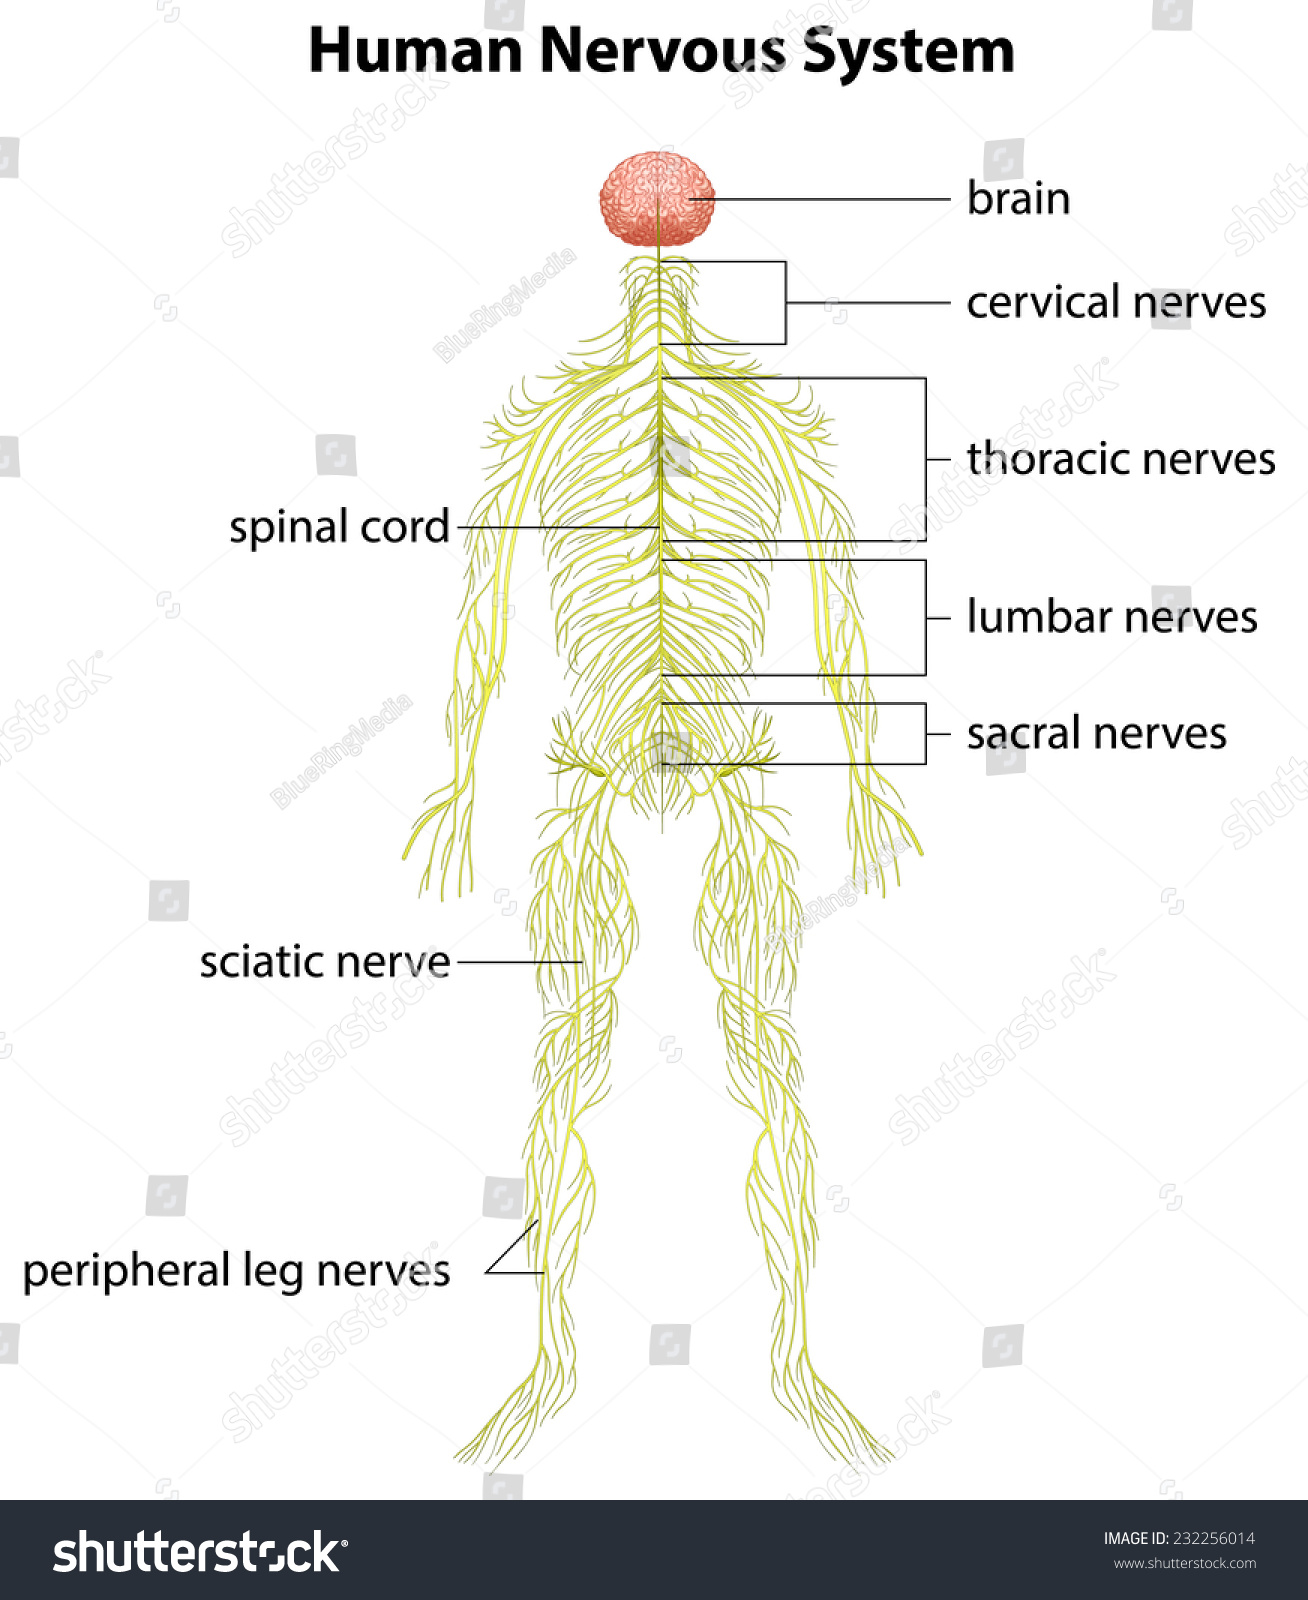 Image Showing Human Nervous System Stock Vector